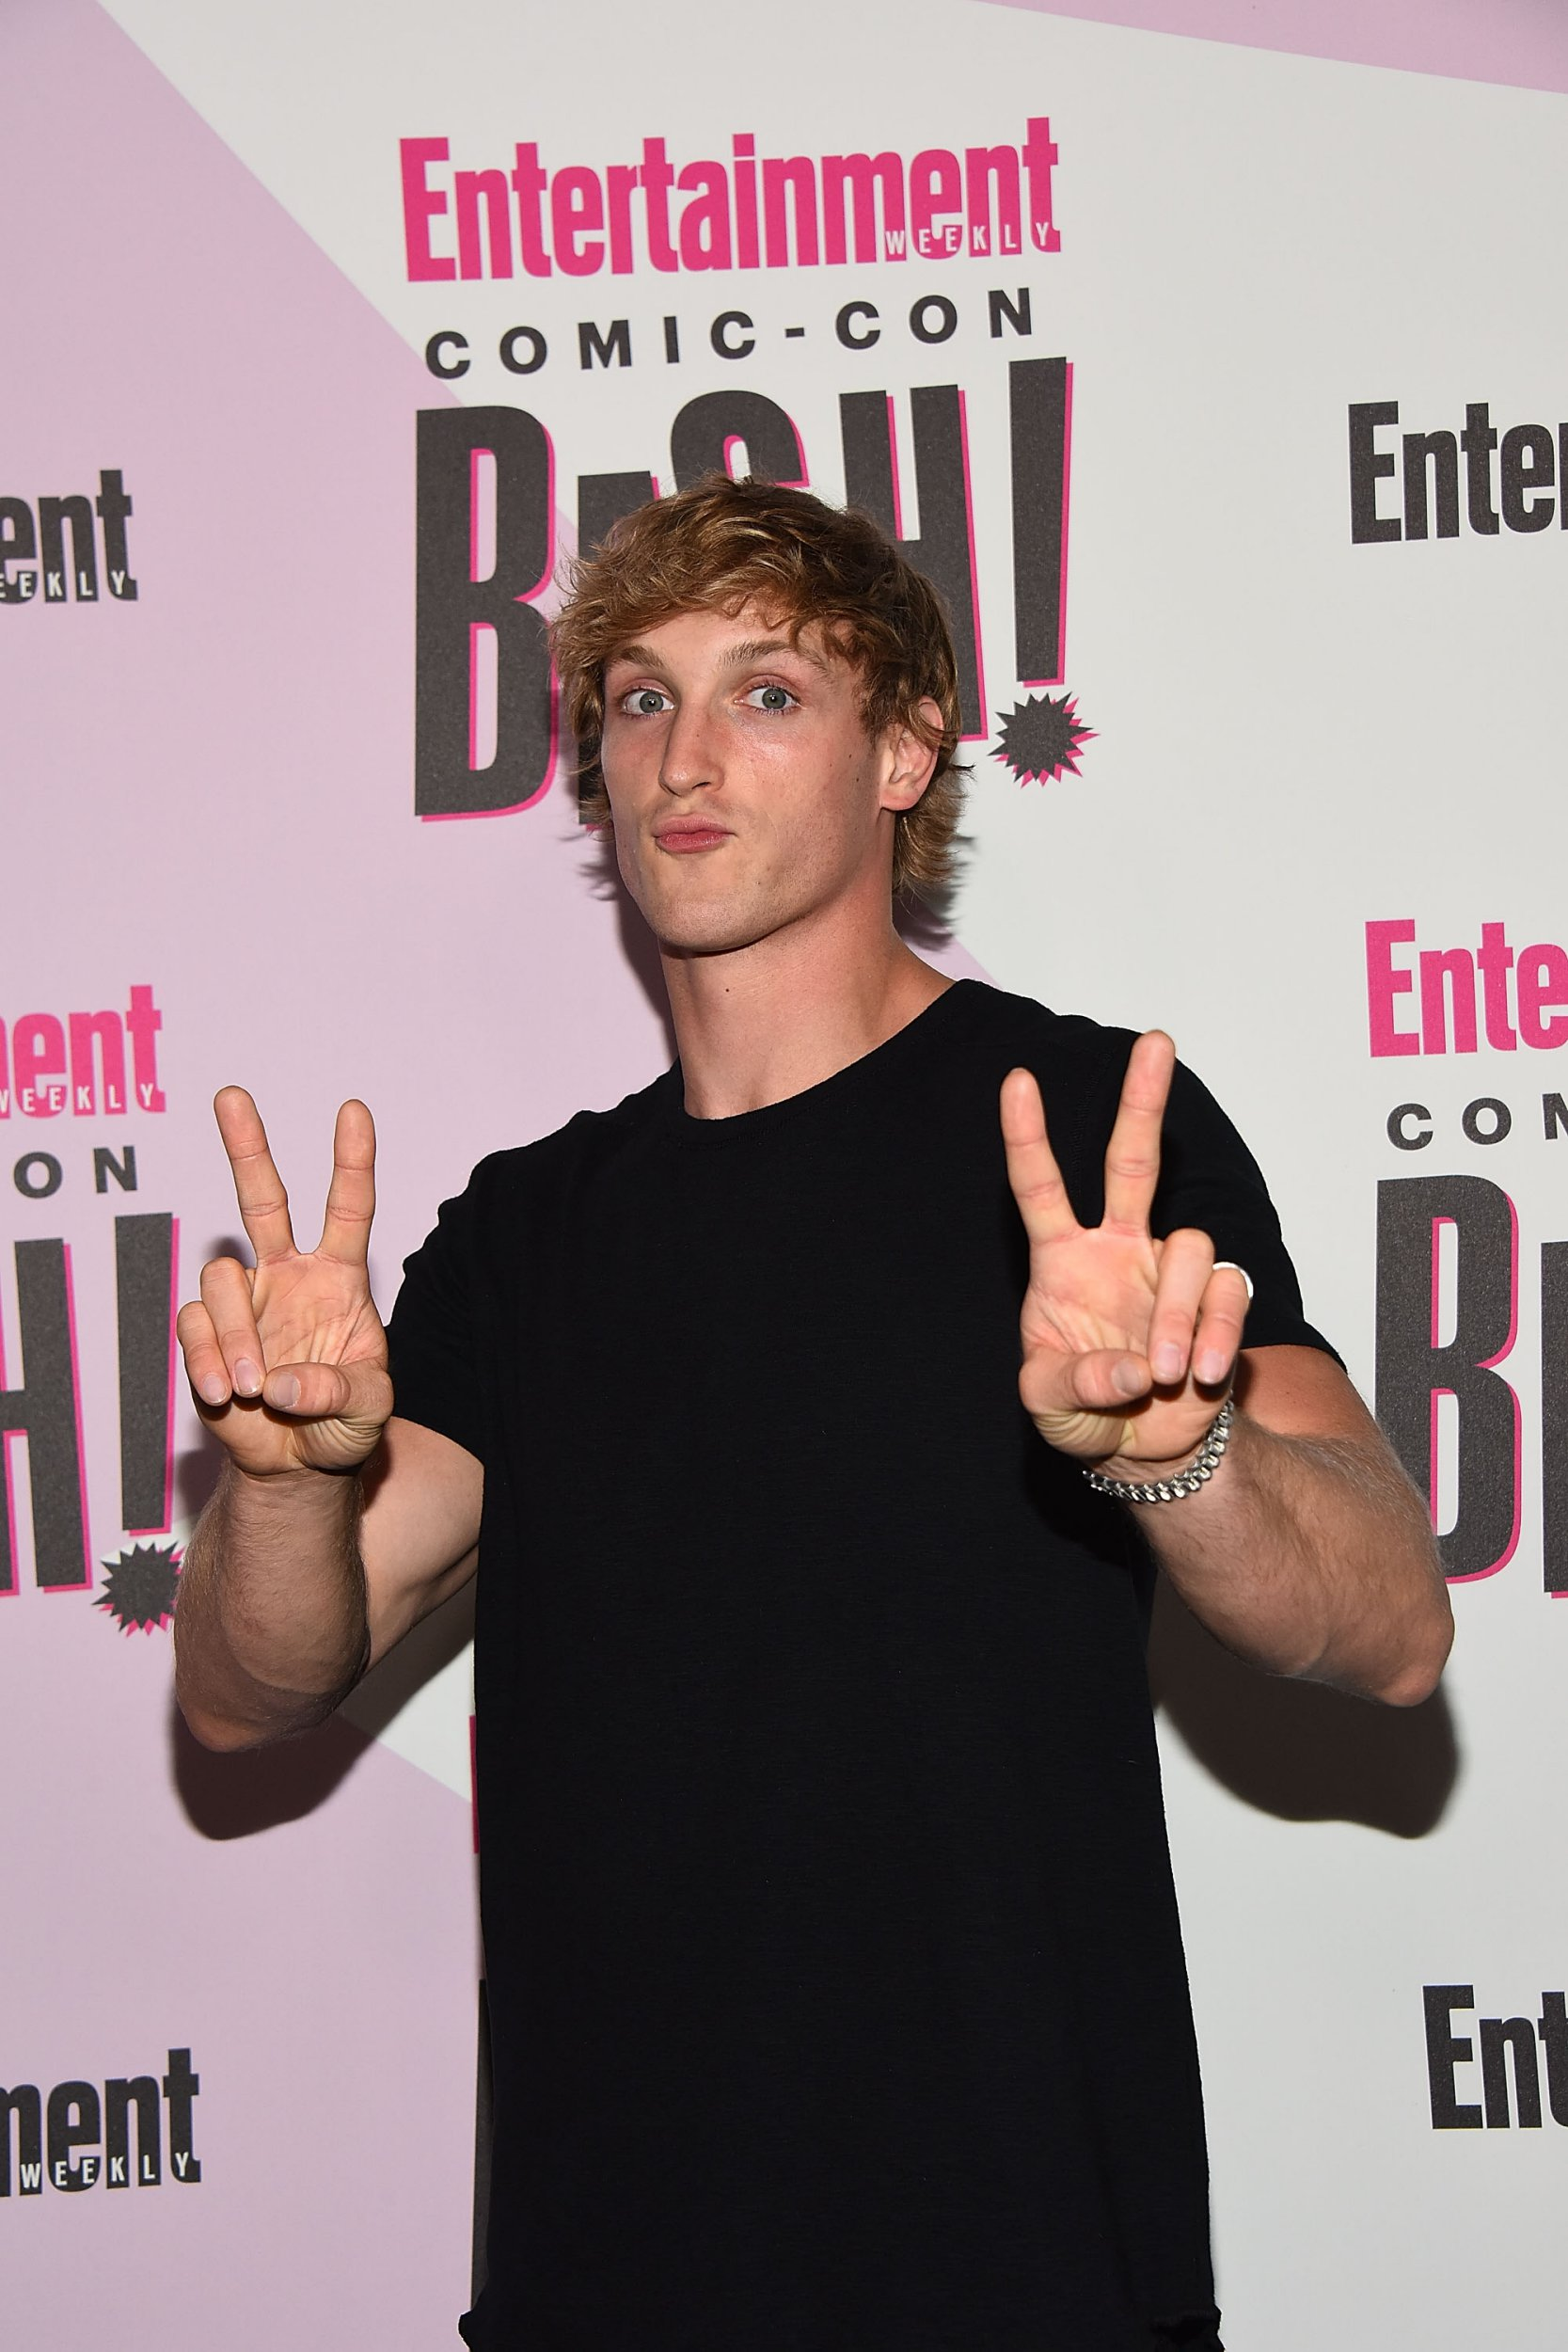 SAN DIEGO, CA - JULY 21: Logan Paul attends Entertainment Weekly's Comic-Con Bash held at FLOAT, Hard Rock Hotel San Diego on at Float at Hard Rock Hotel San Diego on July 21, 2018 in San Diego, California. (Photo by Araya Diaz/WireImage)